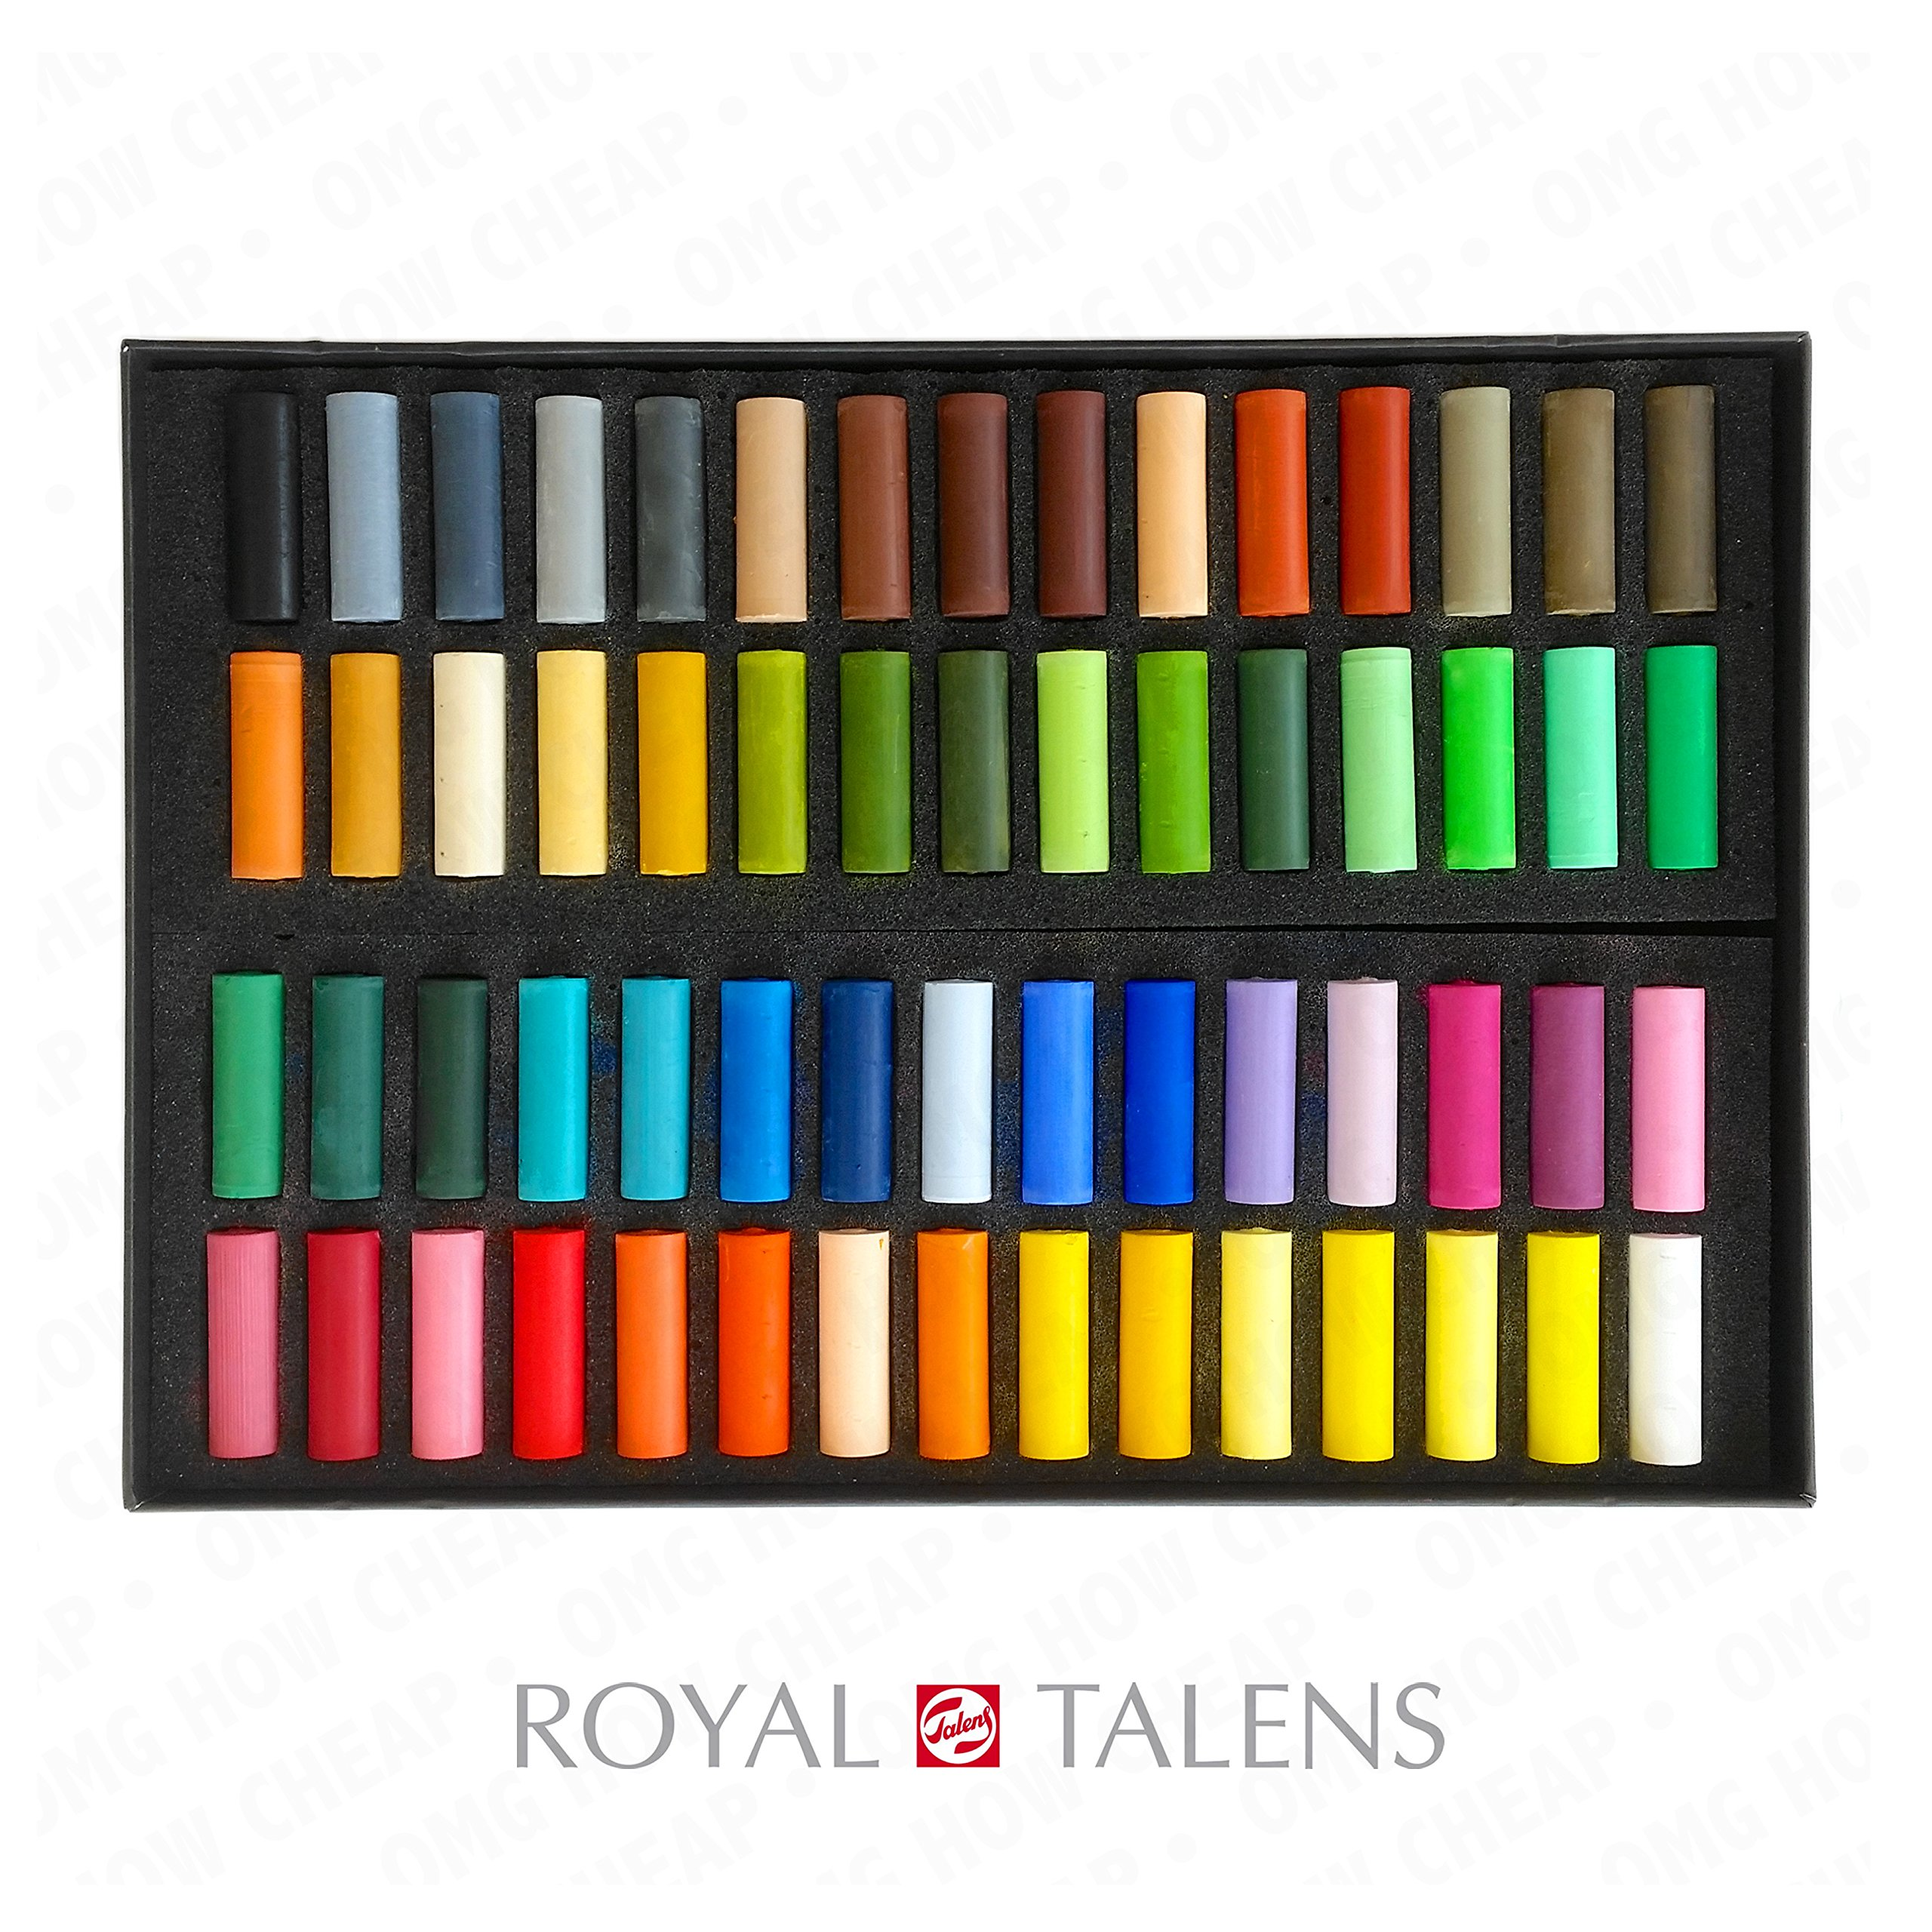 Royal Talens - Rembrandt Extra Fine Soft Pastel - Artist Quality - De Luxe Set of 60 by Royal Talens